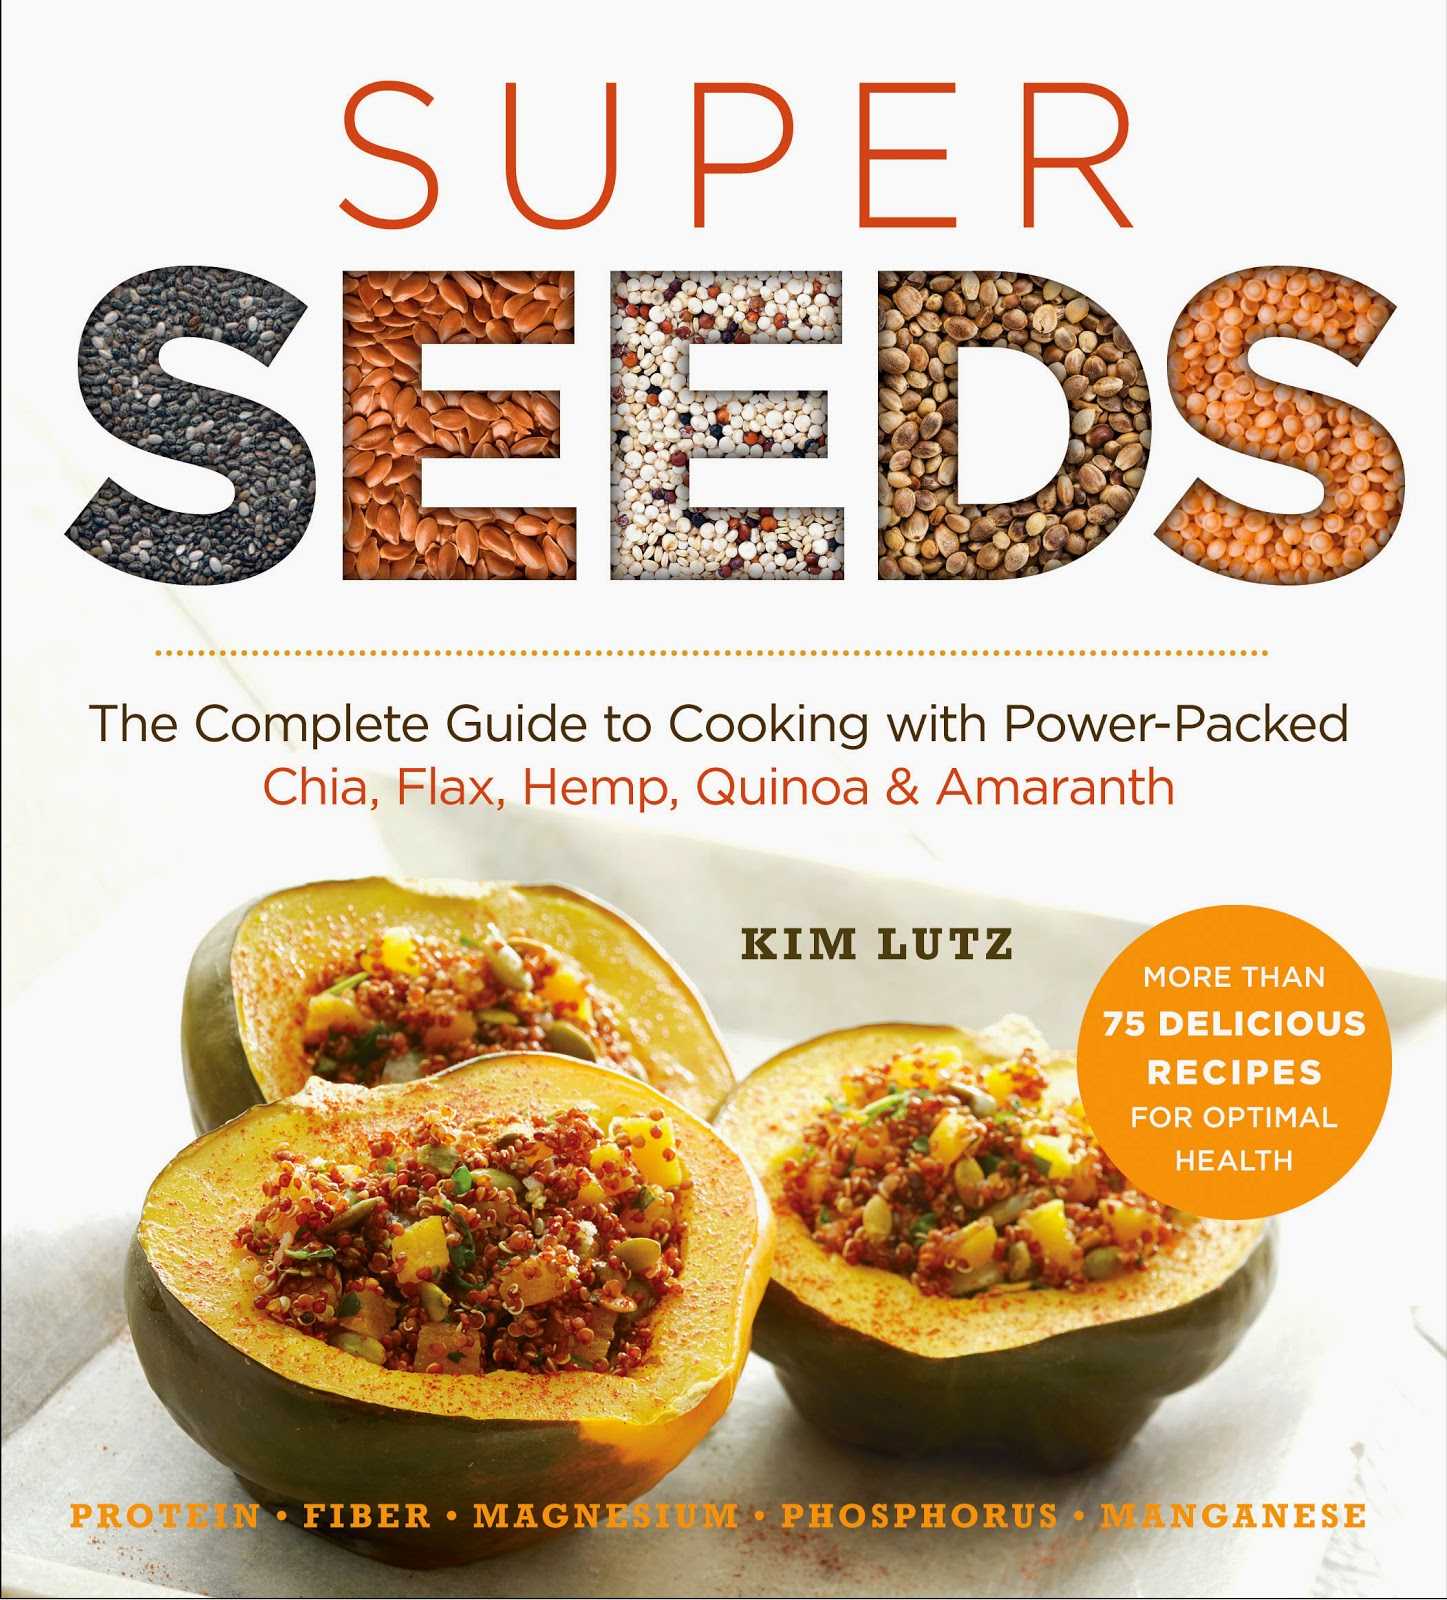 Super Seeds, Cooking with Chia, Hemp, Flax, Quinoa and Amaranth